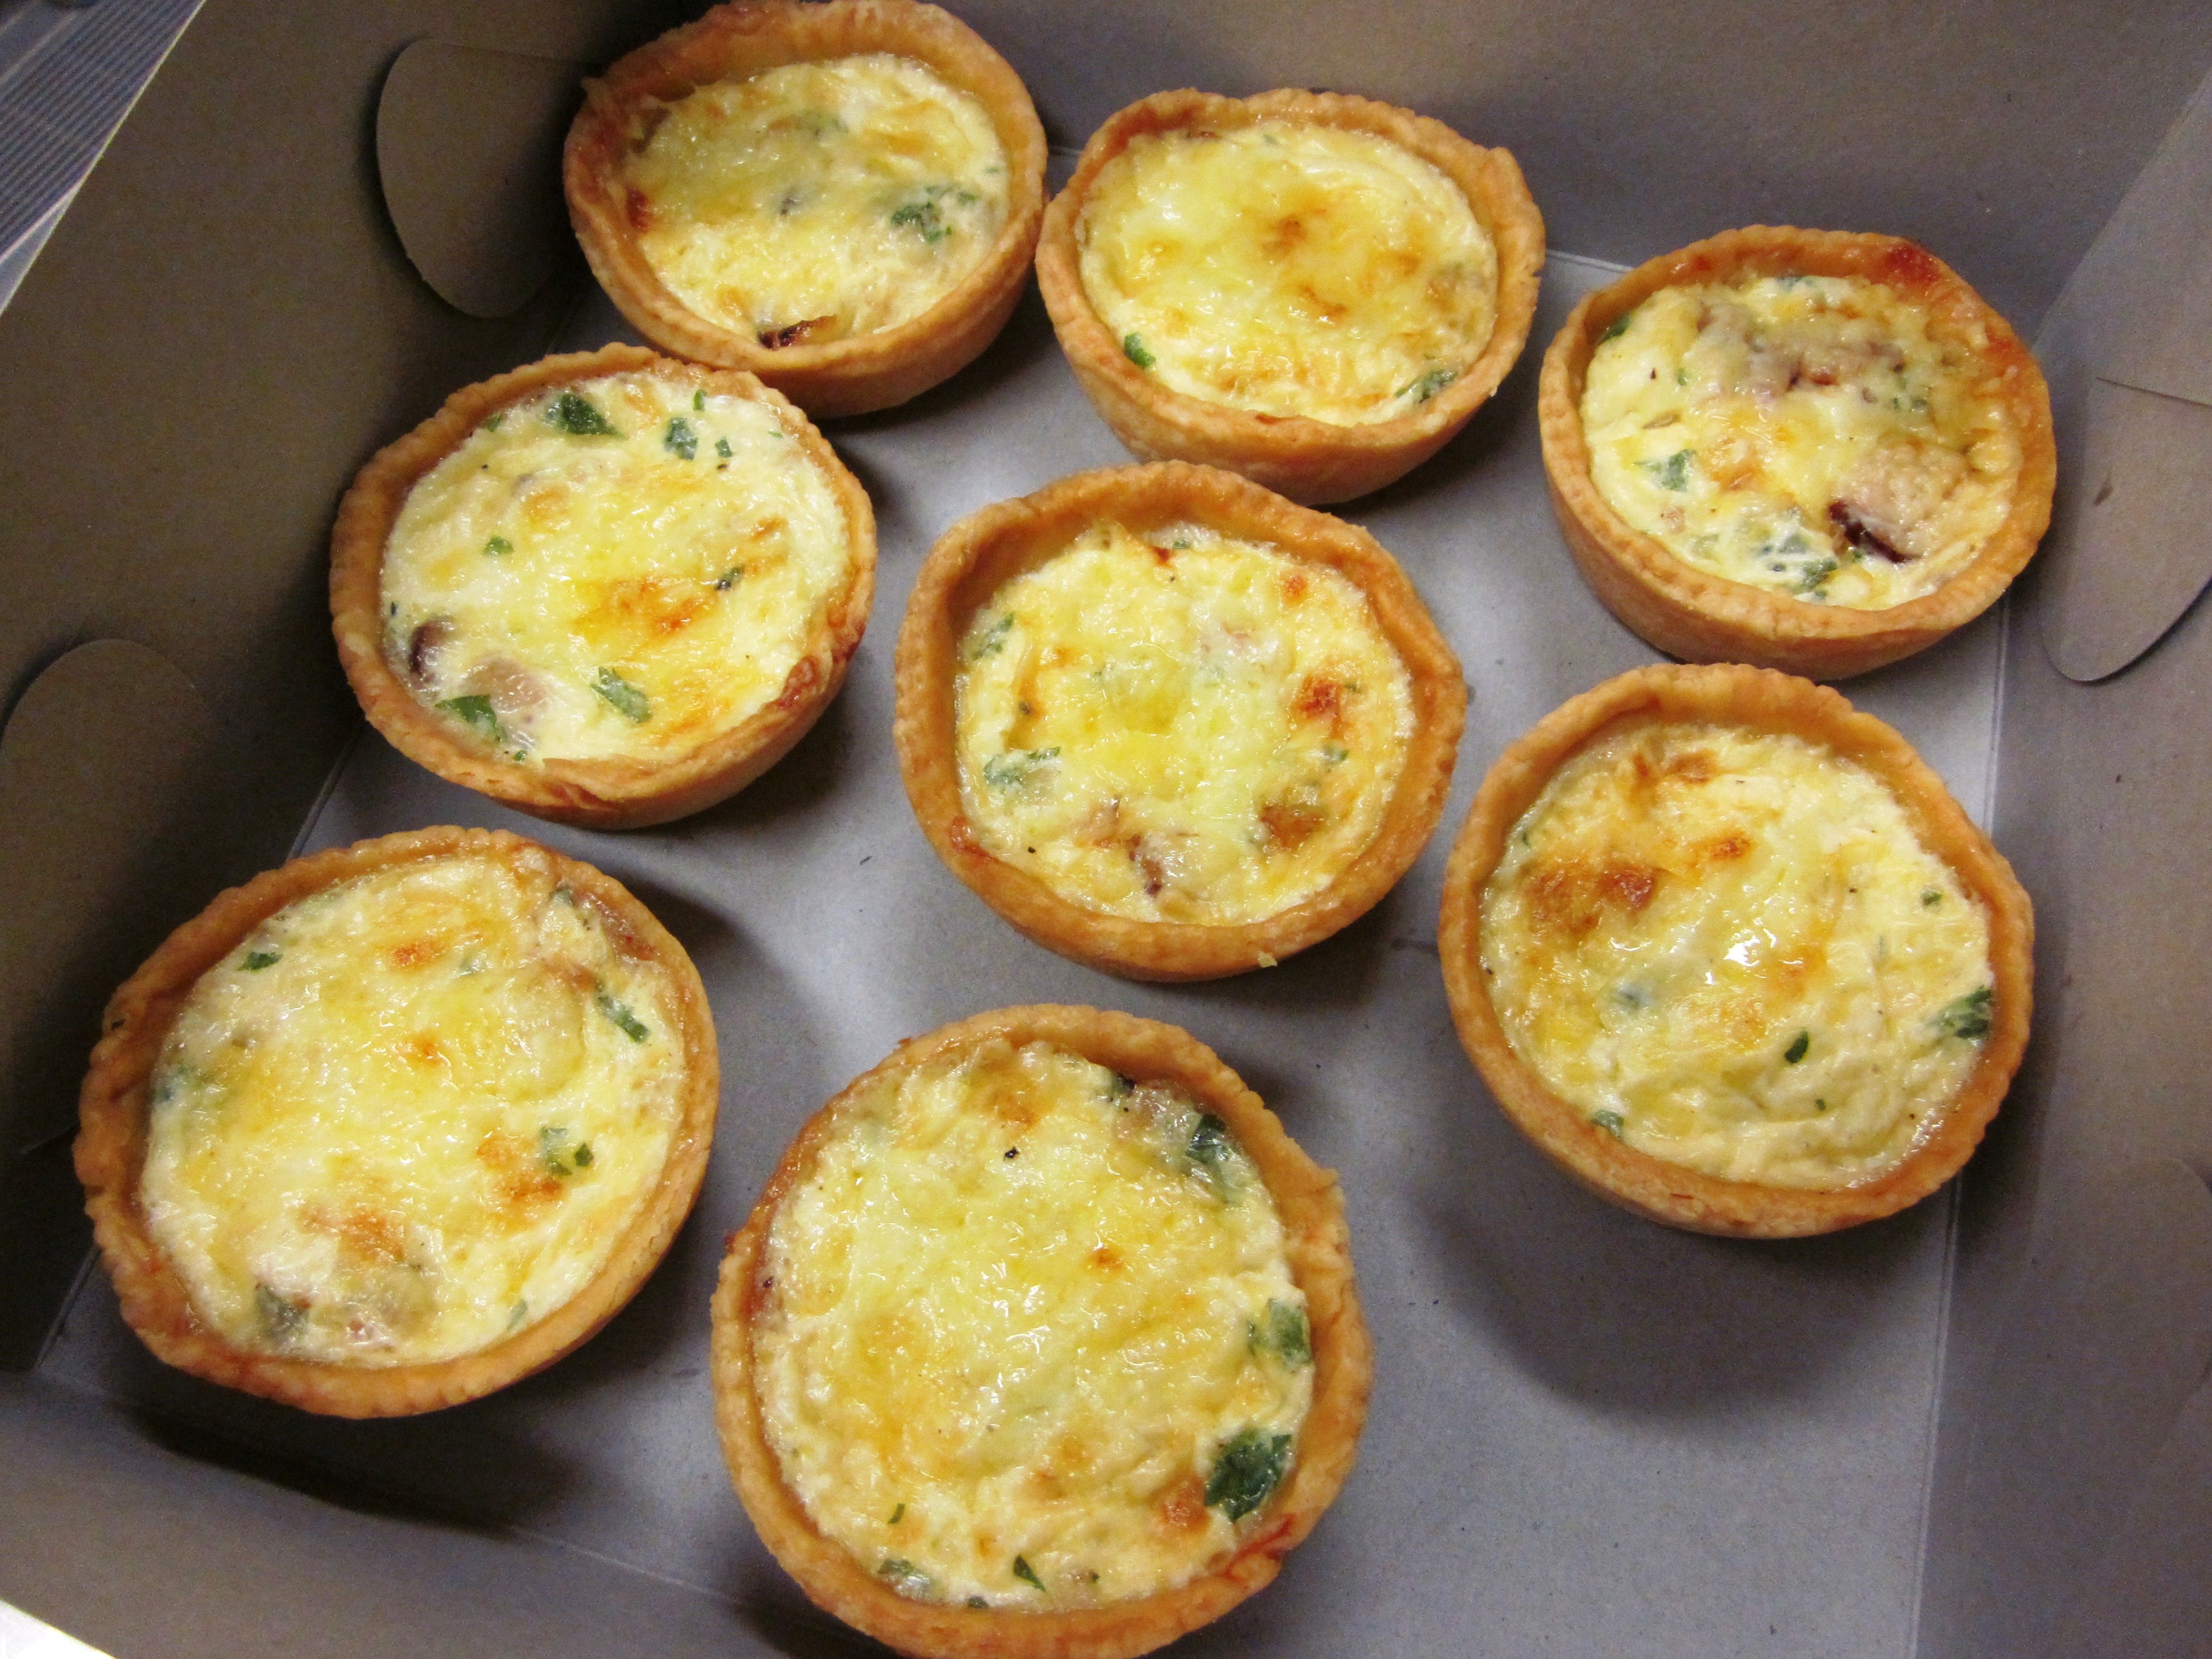 pastry making class week 1 quiche myfoodmywayblog. Black Bedroom Furniture Sets. Home Design Ideas